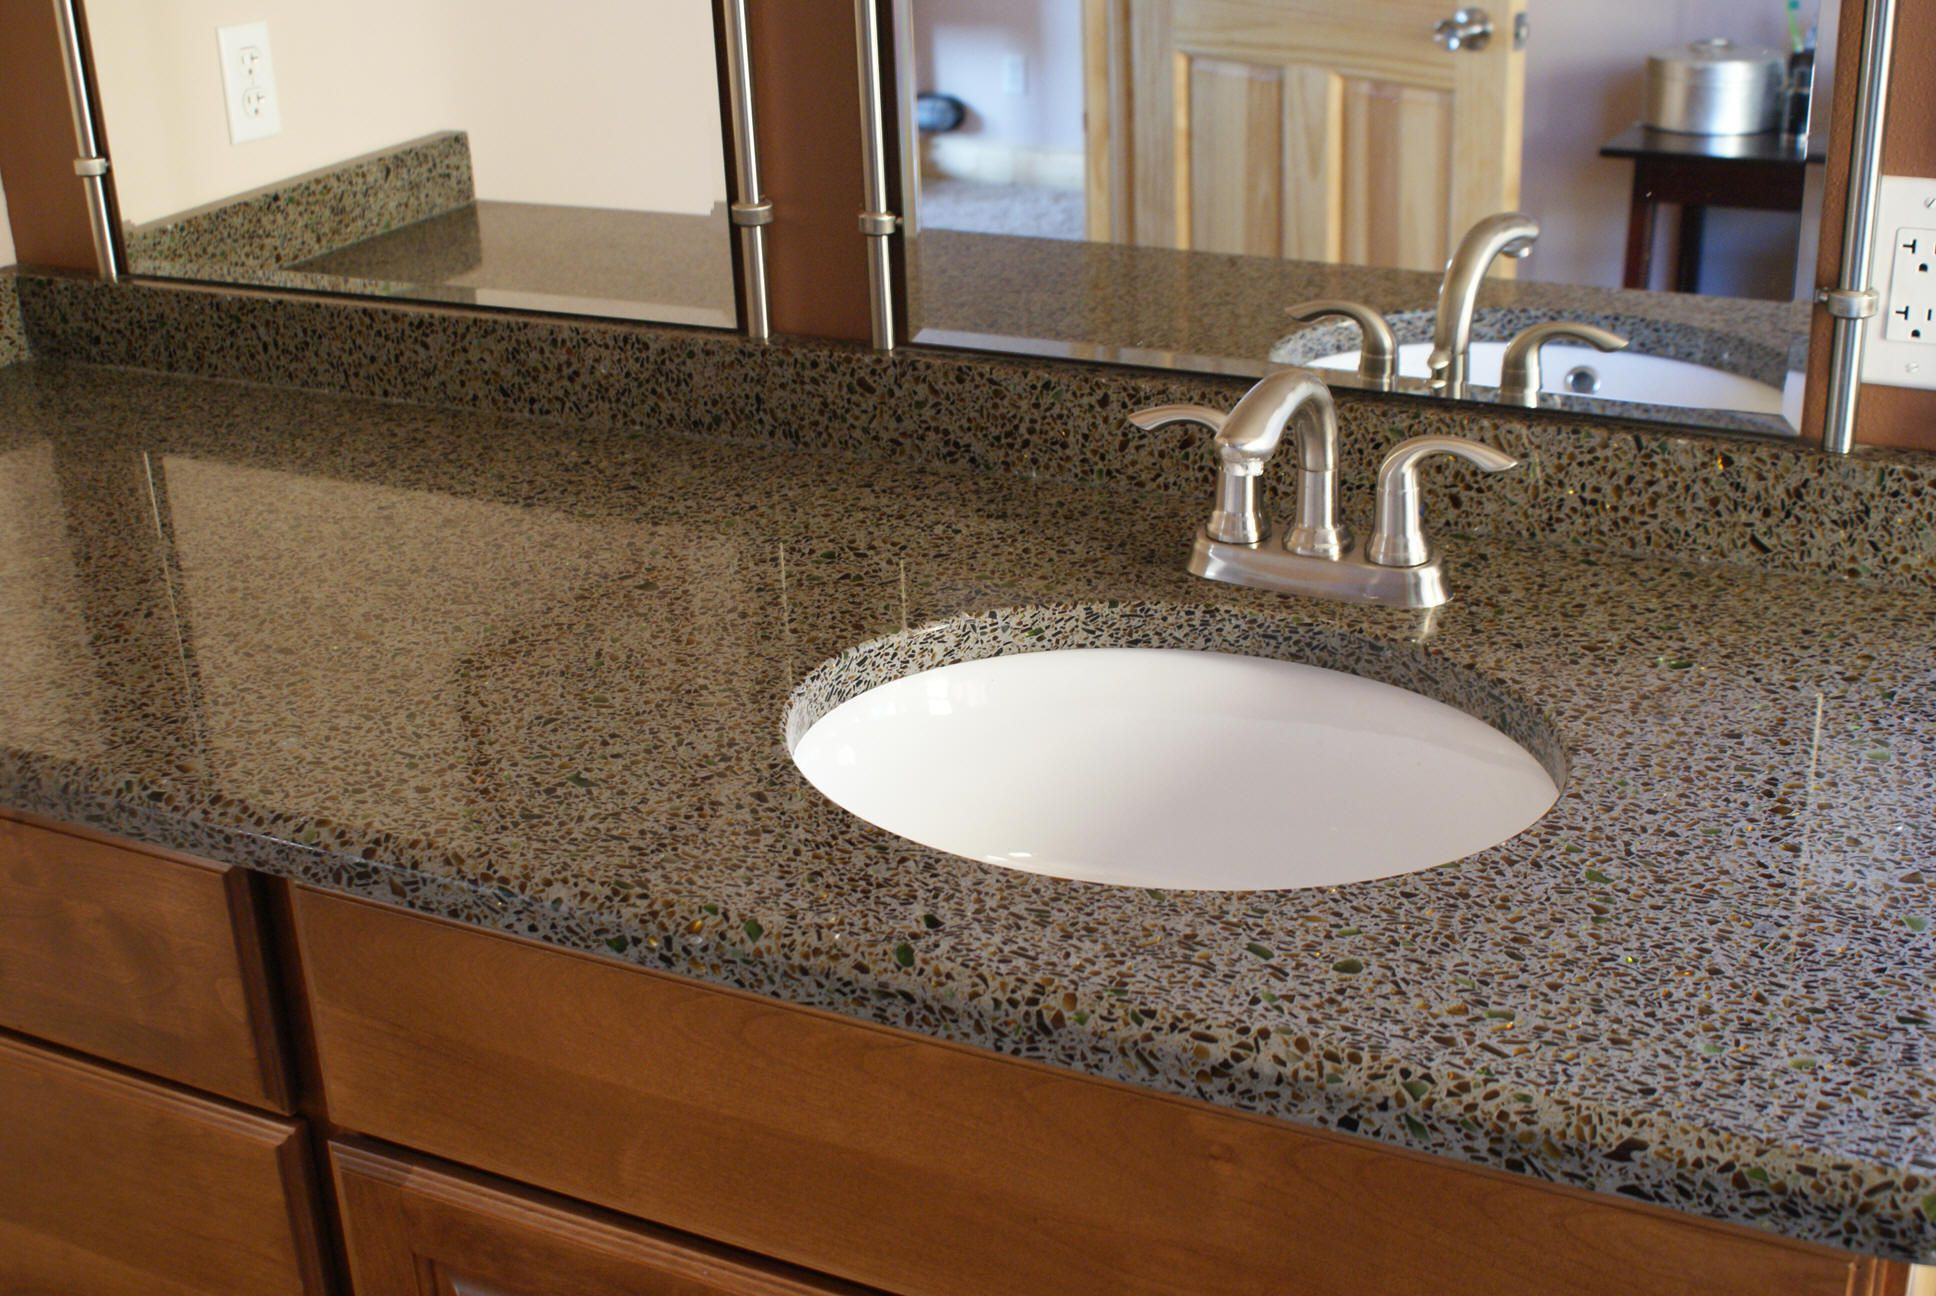 Recycled Glass Counter Tops Bathrooms But Not Kitchen I Think It Stains Easier Than Granite